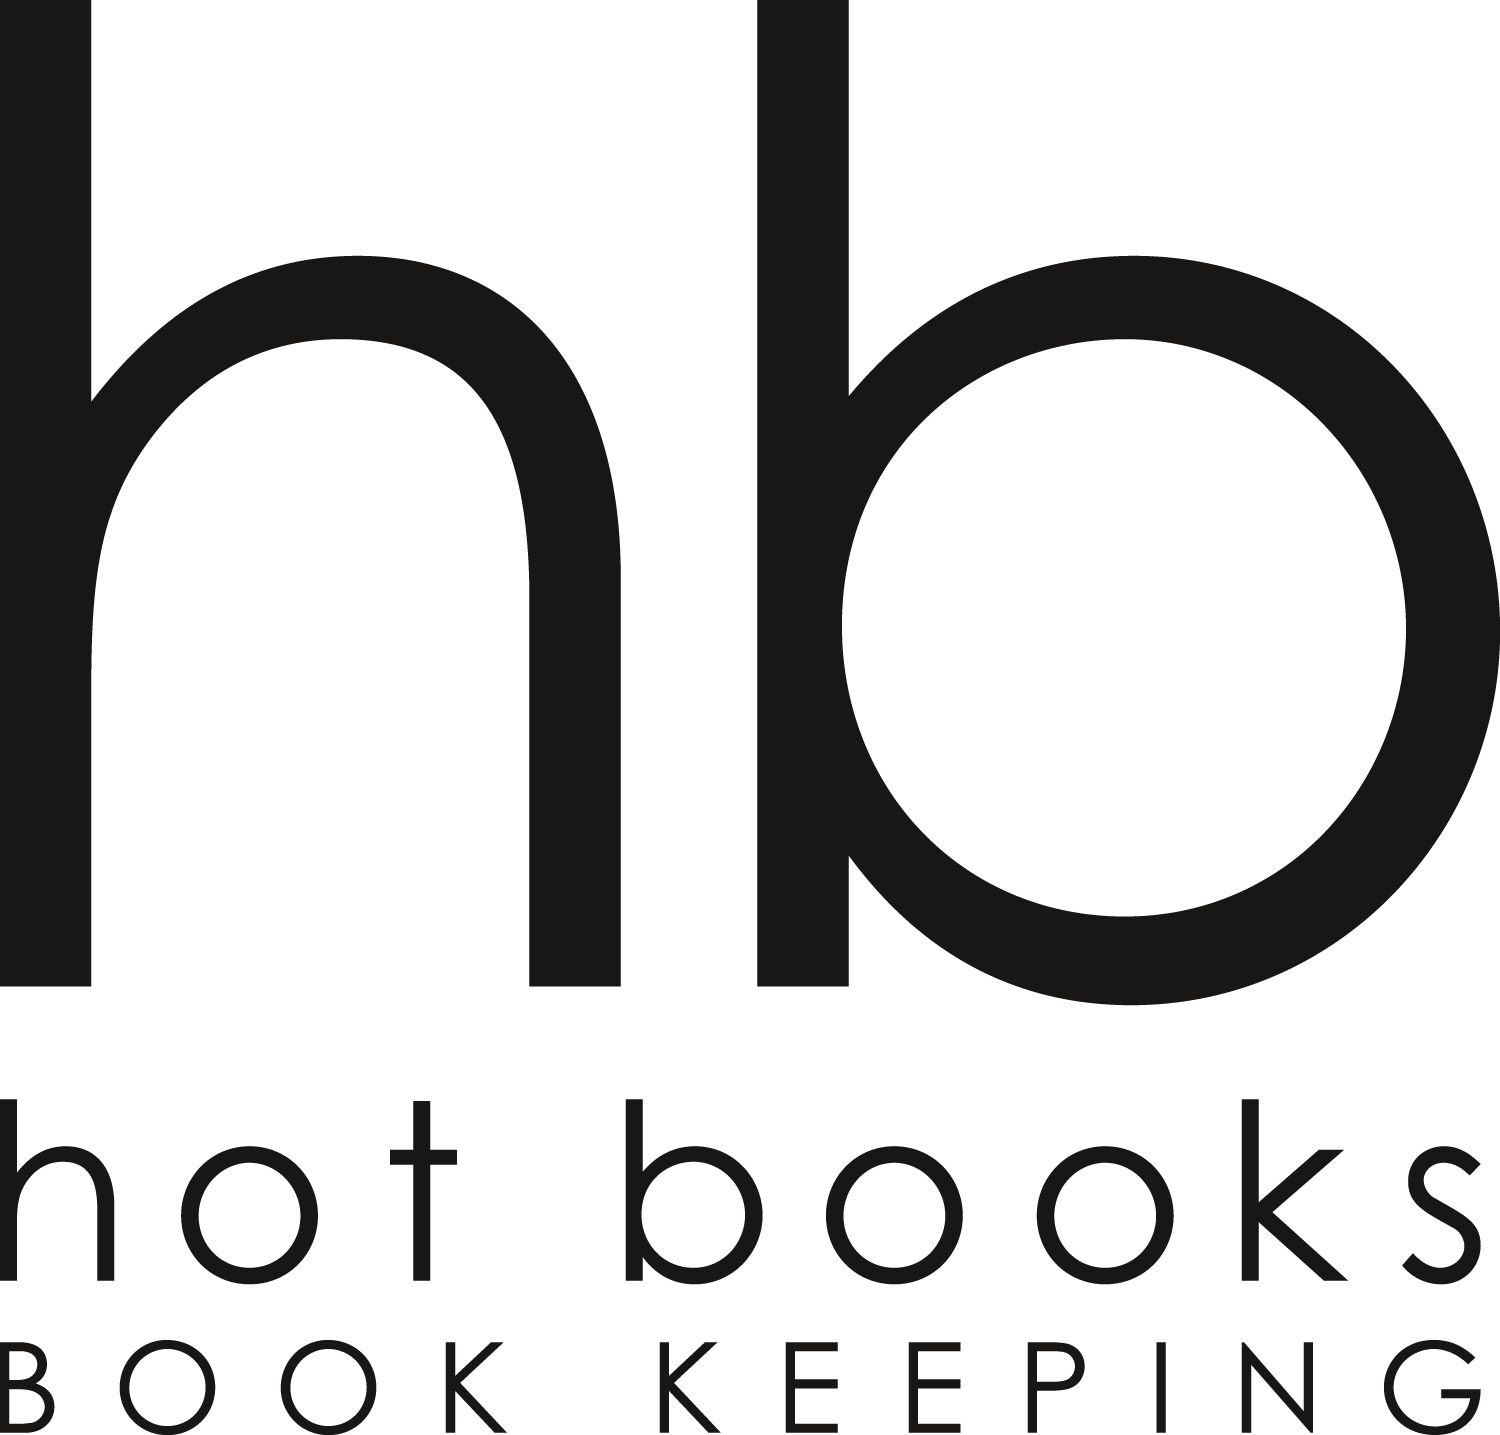 Hot Books Bookkeeping